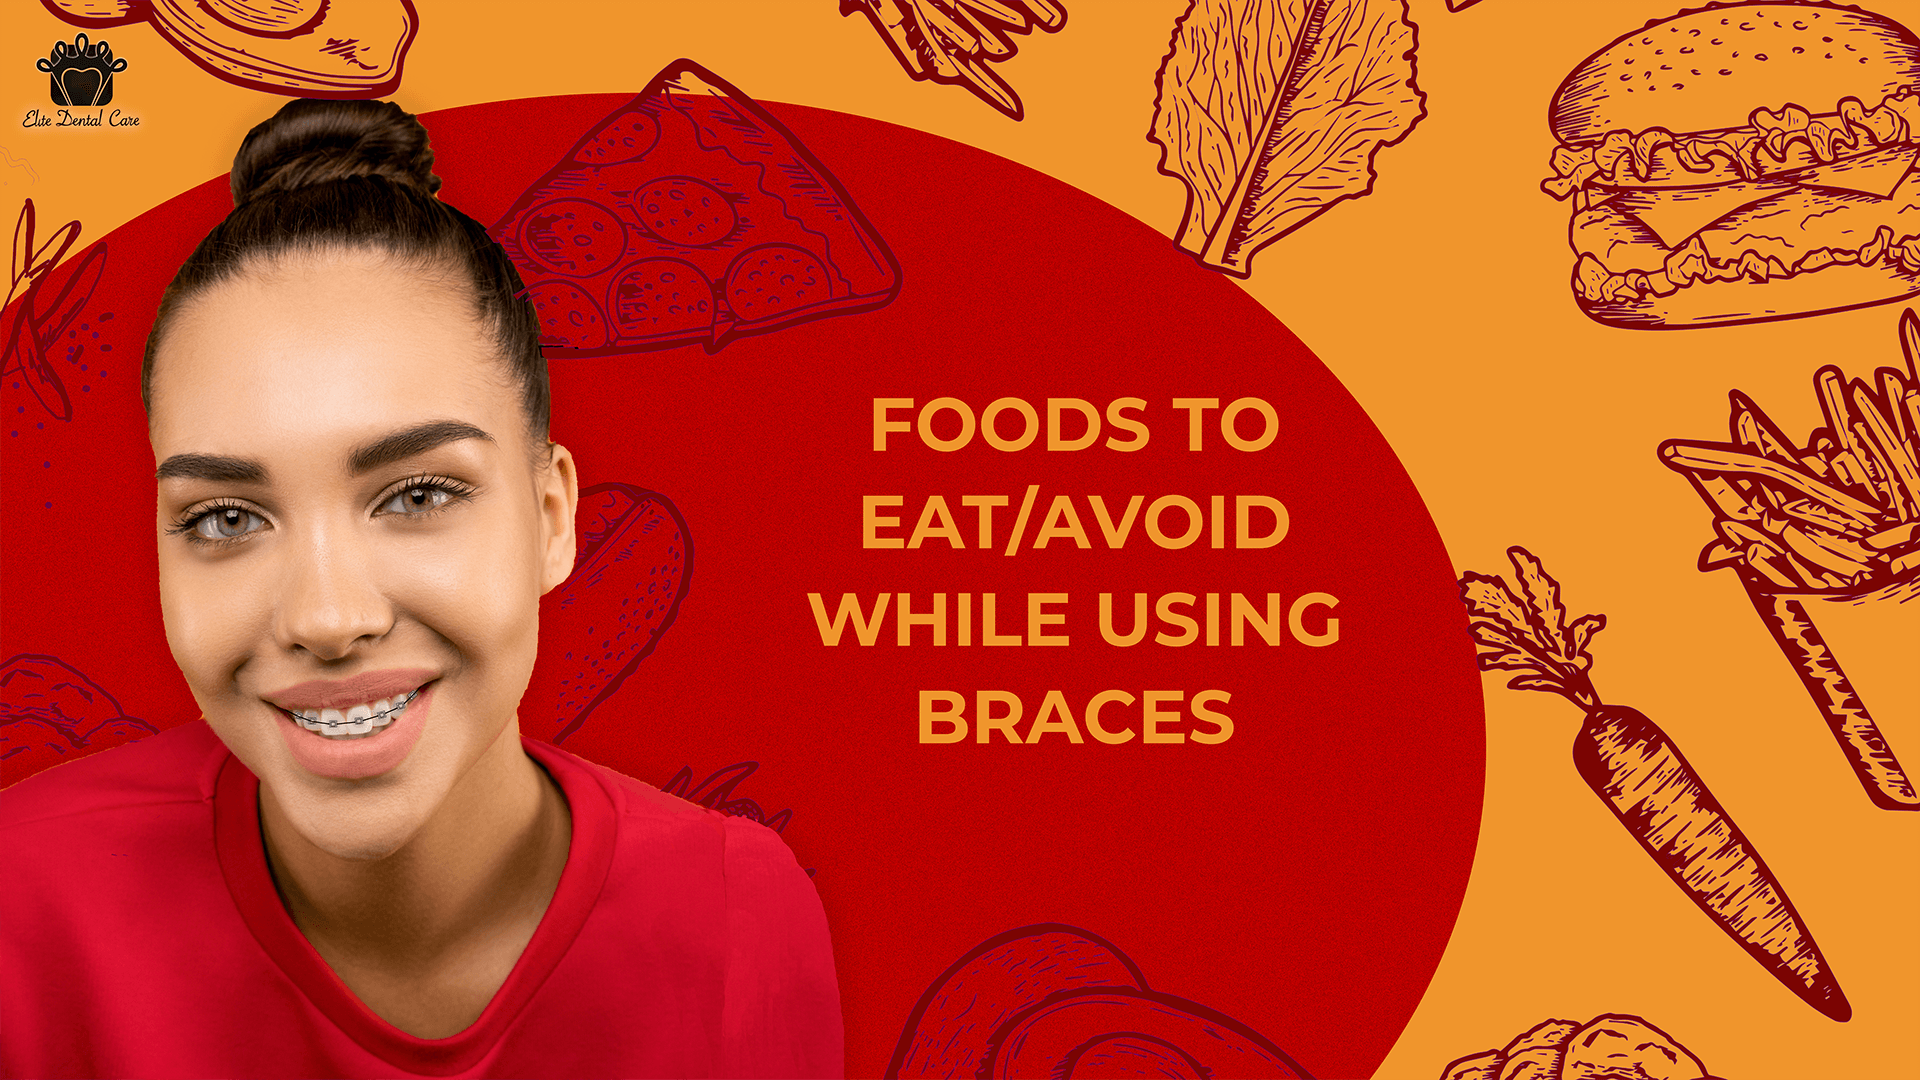 Foods to eat/avoid while using braces